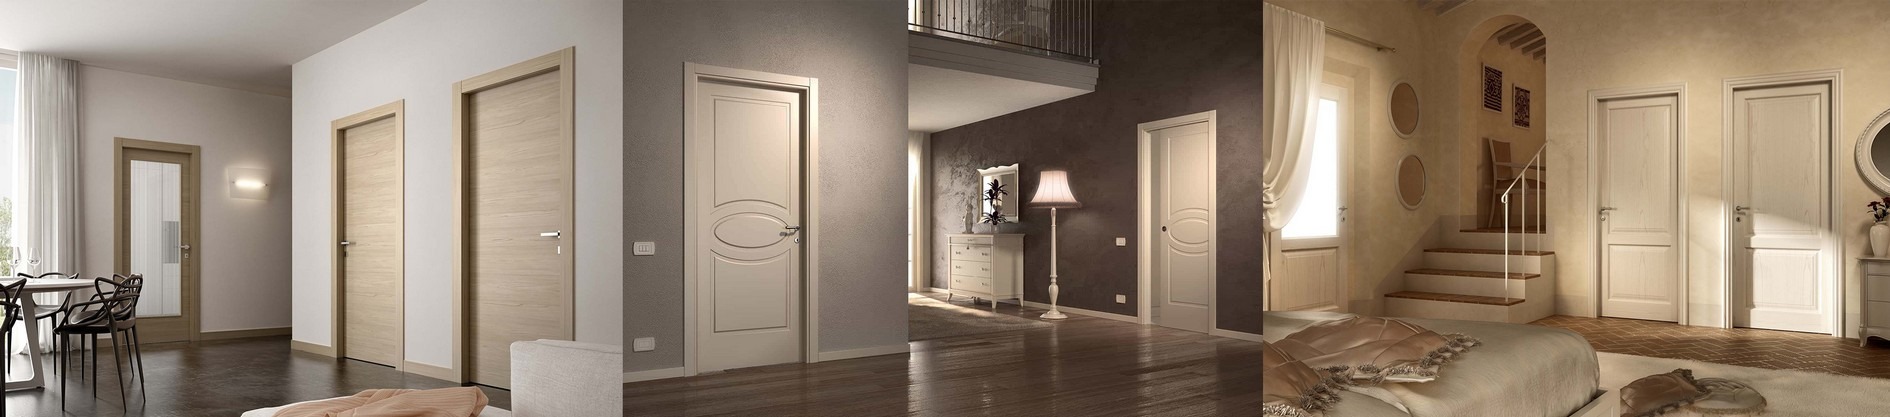 Euro Comaco Italian Design With Its Selection Of Doors Helps You To Define  The Style And Personality Of Each Room, The Finish Becomes The Protagonist  Of The ...